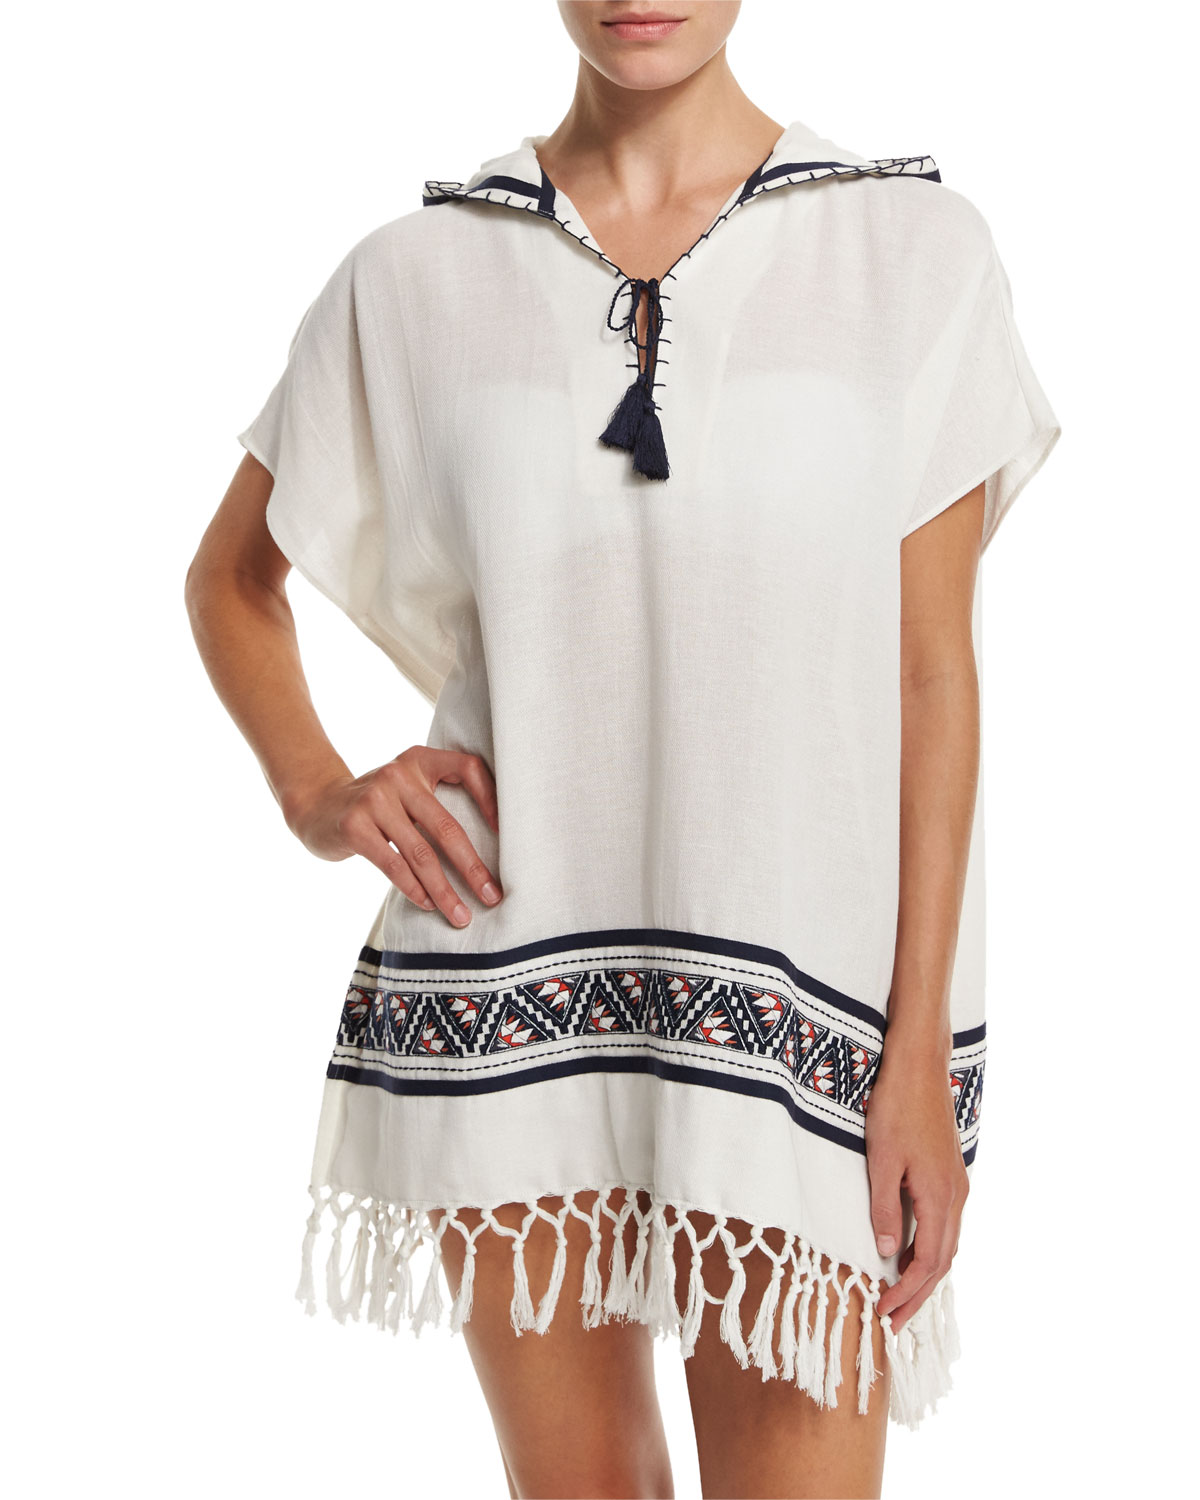 Tory Burch Embroidered Beach Poncho Coverup with Hood, Size: MEDIUM/LARGE, New Ivory/Acoma